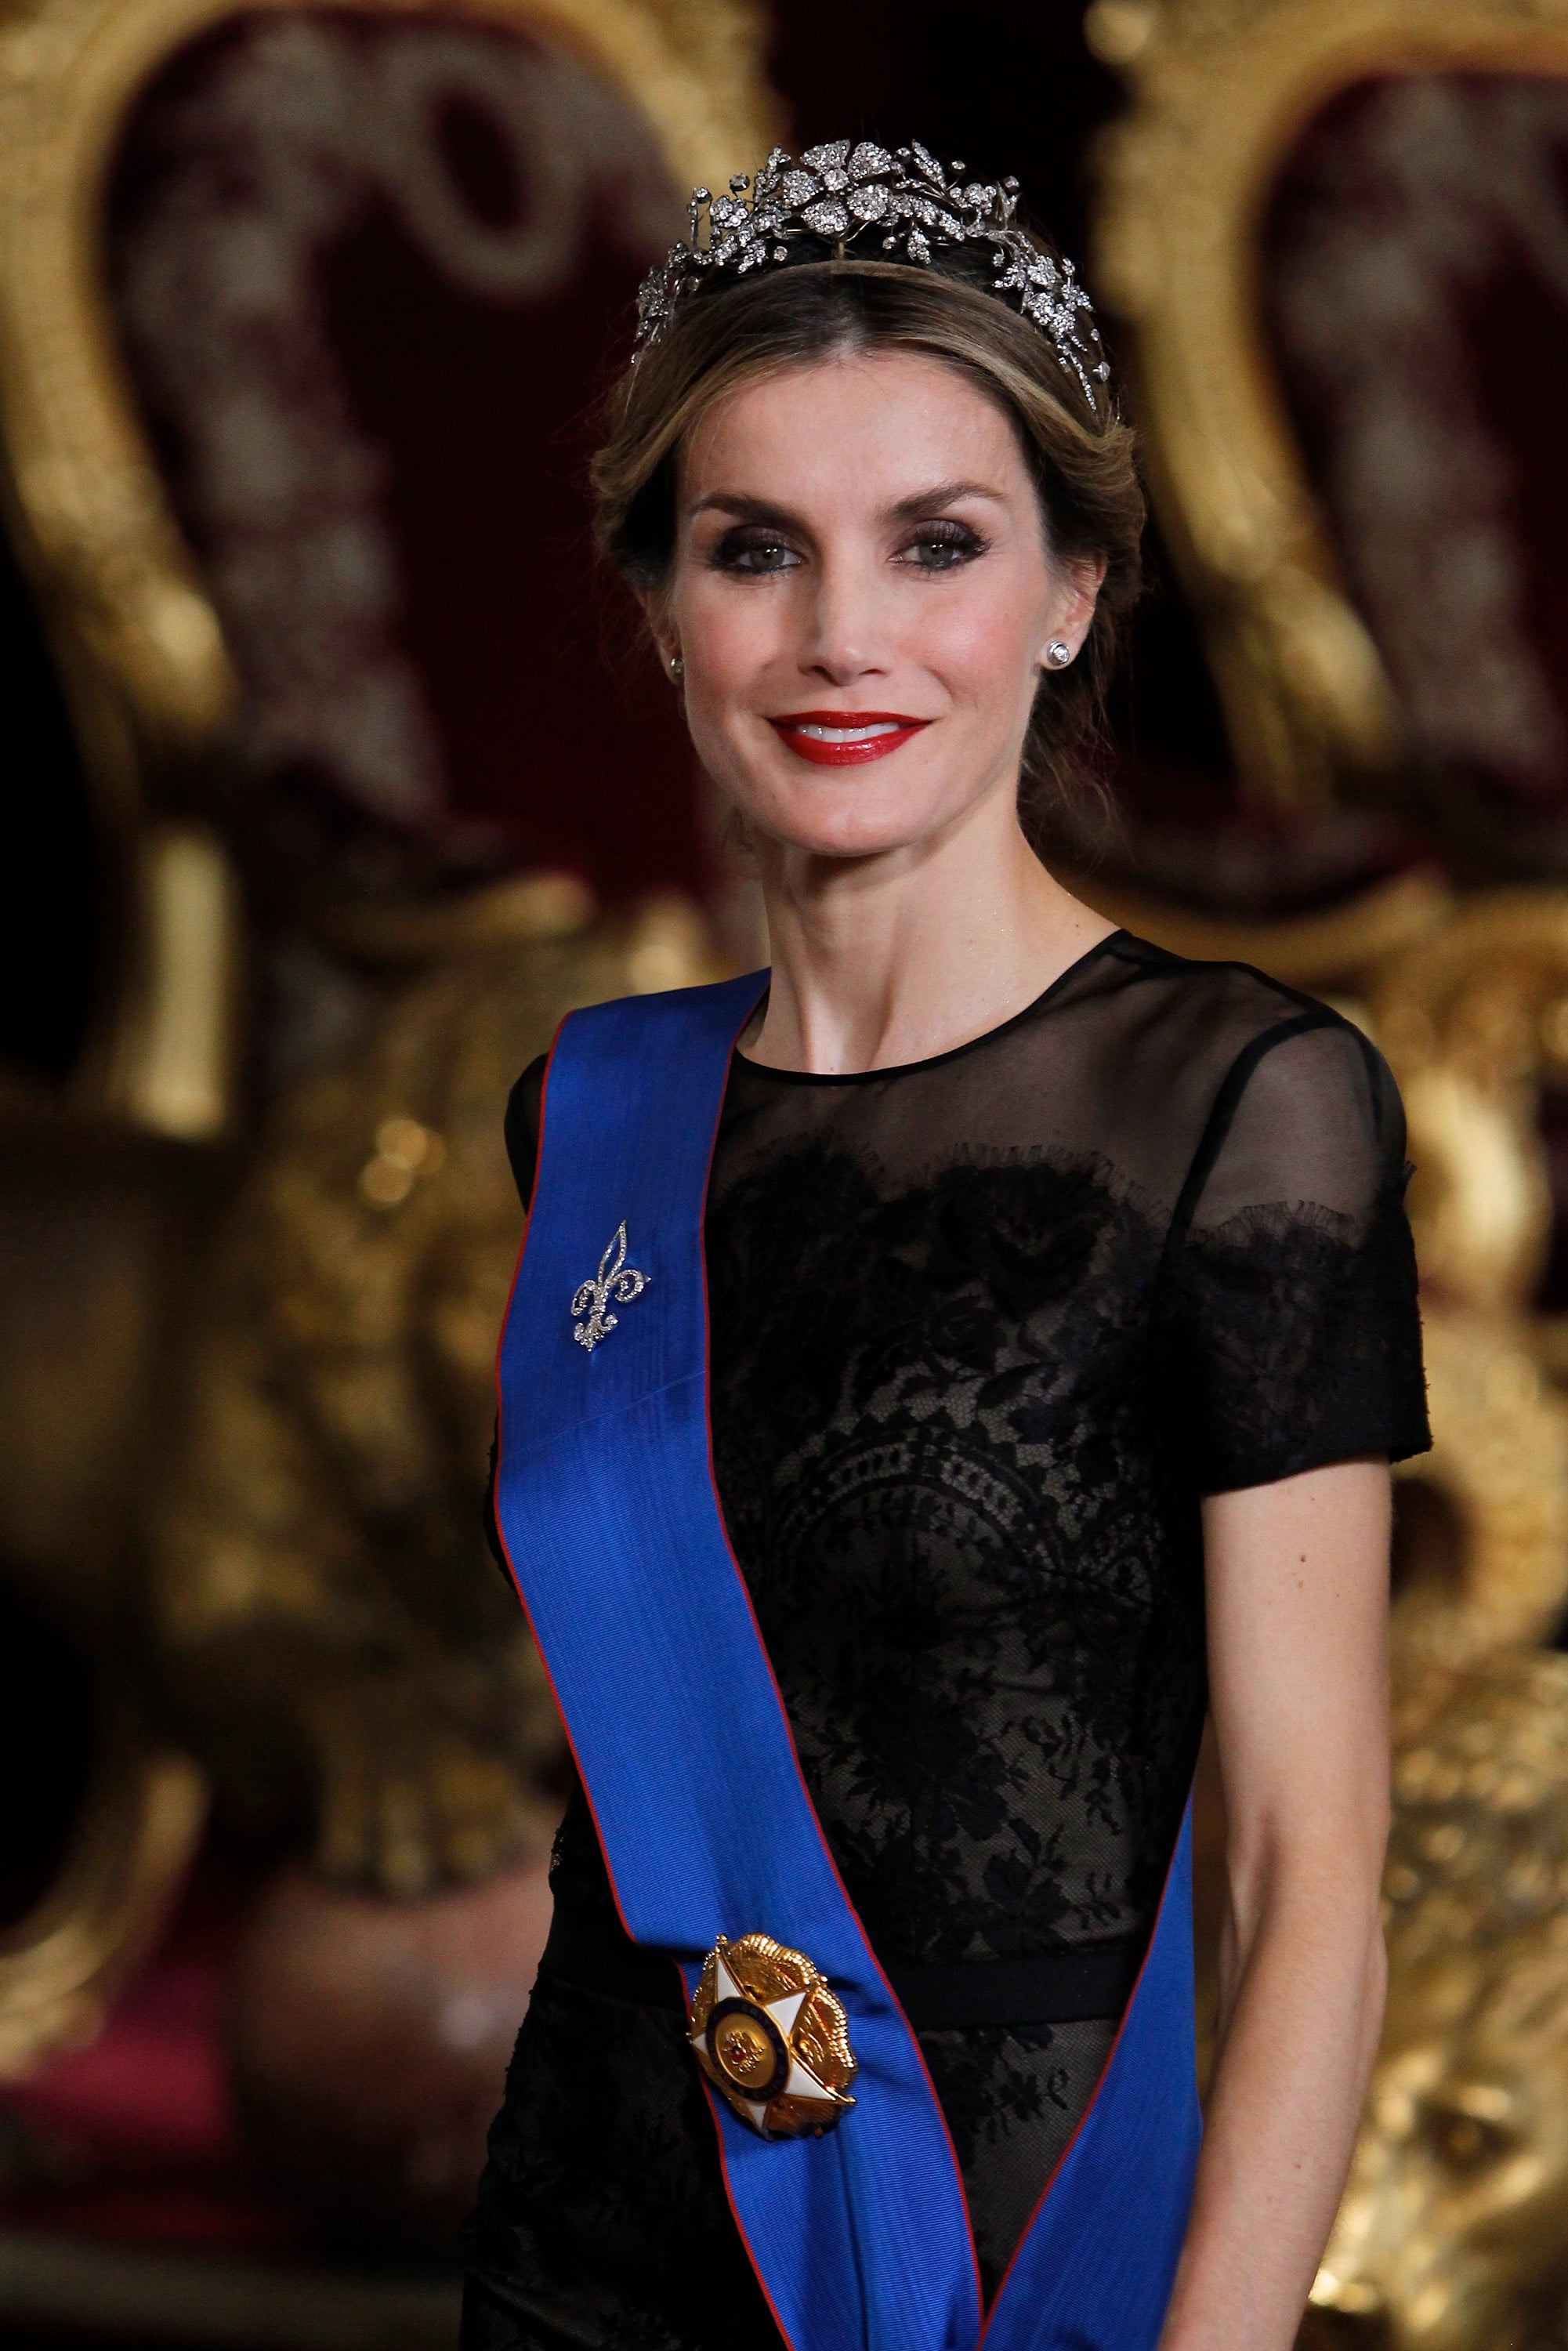 She's Officially Spain's Queen